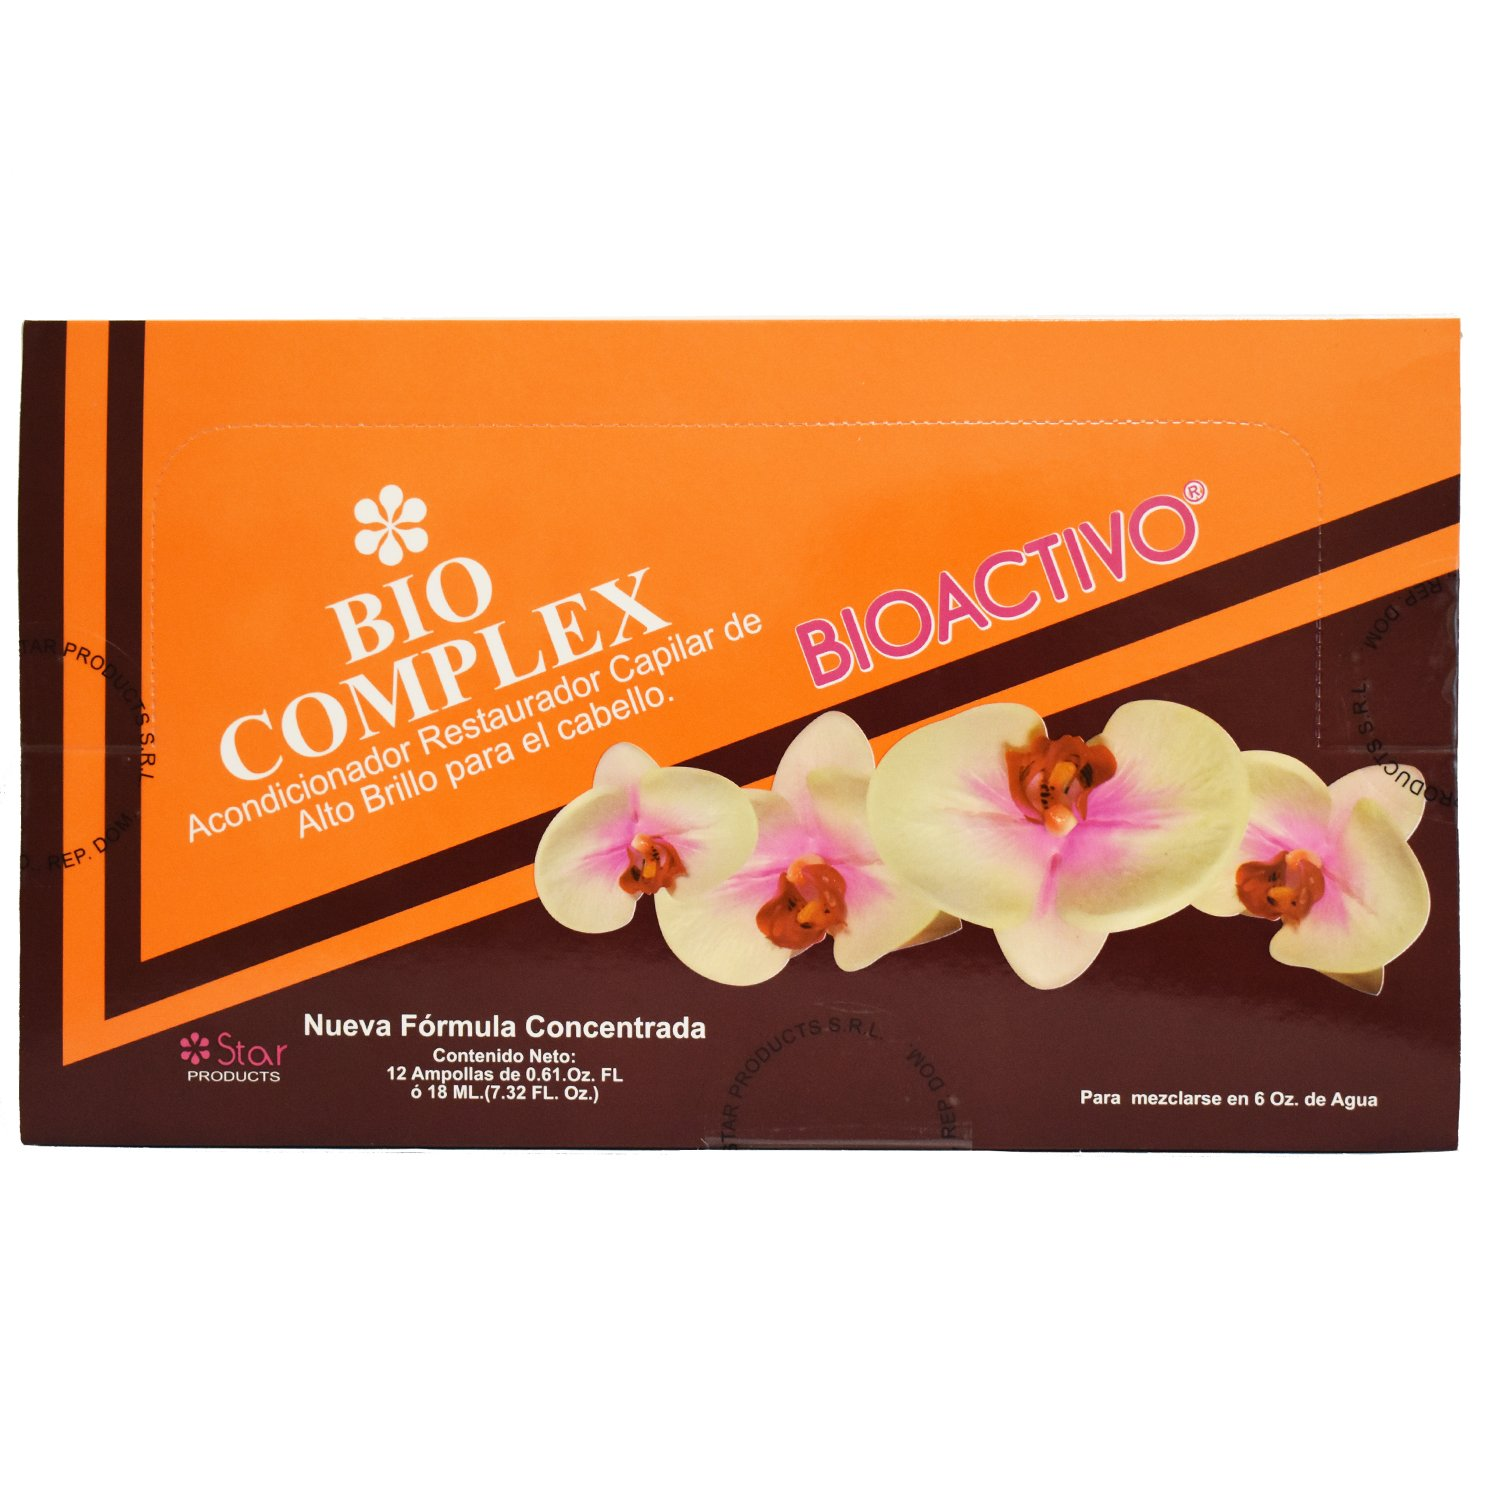 Amazon.com : Star Bio Complex High Shine Hair Conditioner, 12 Count : Standard Hair Conditioners : Beauty